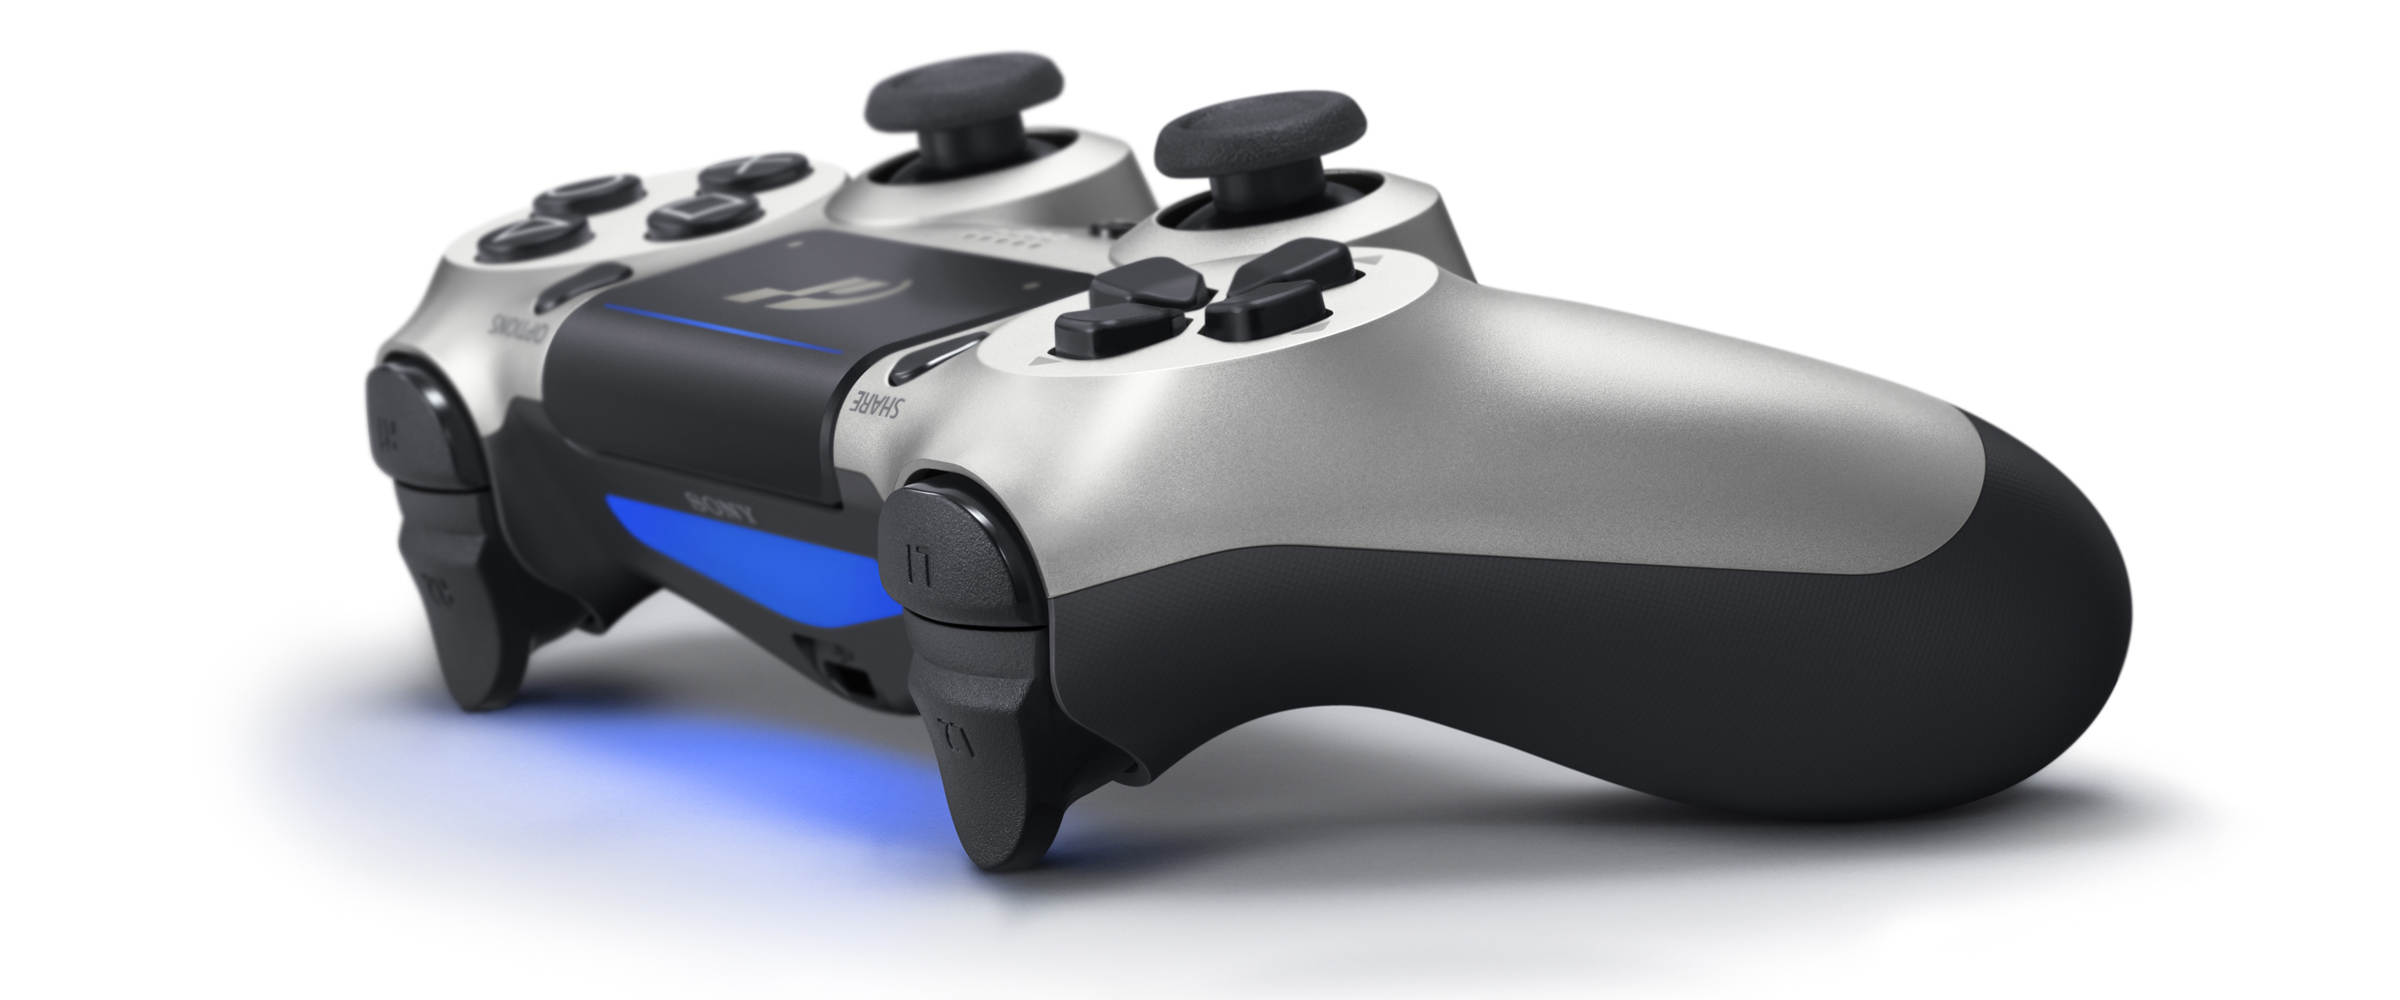 We Will Also Have A Standalone Limited Edition DUALSHOCK 4 As Well Version Thats Bundled With Standard Copy Of The Game